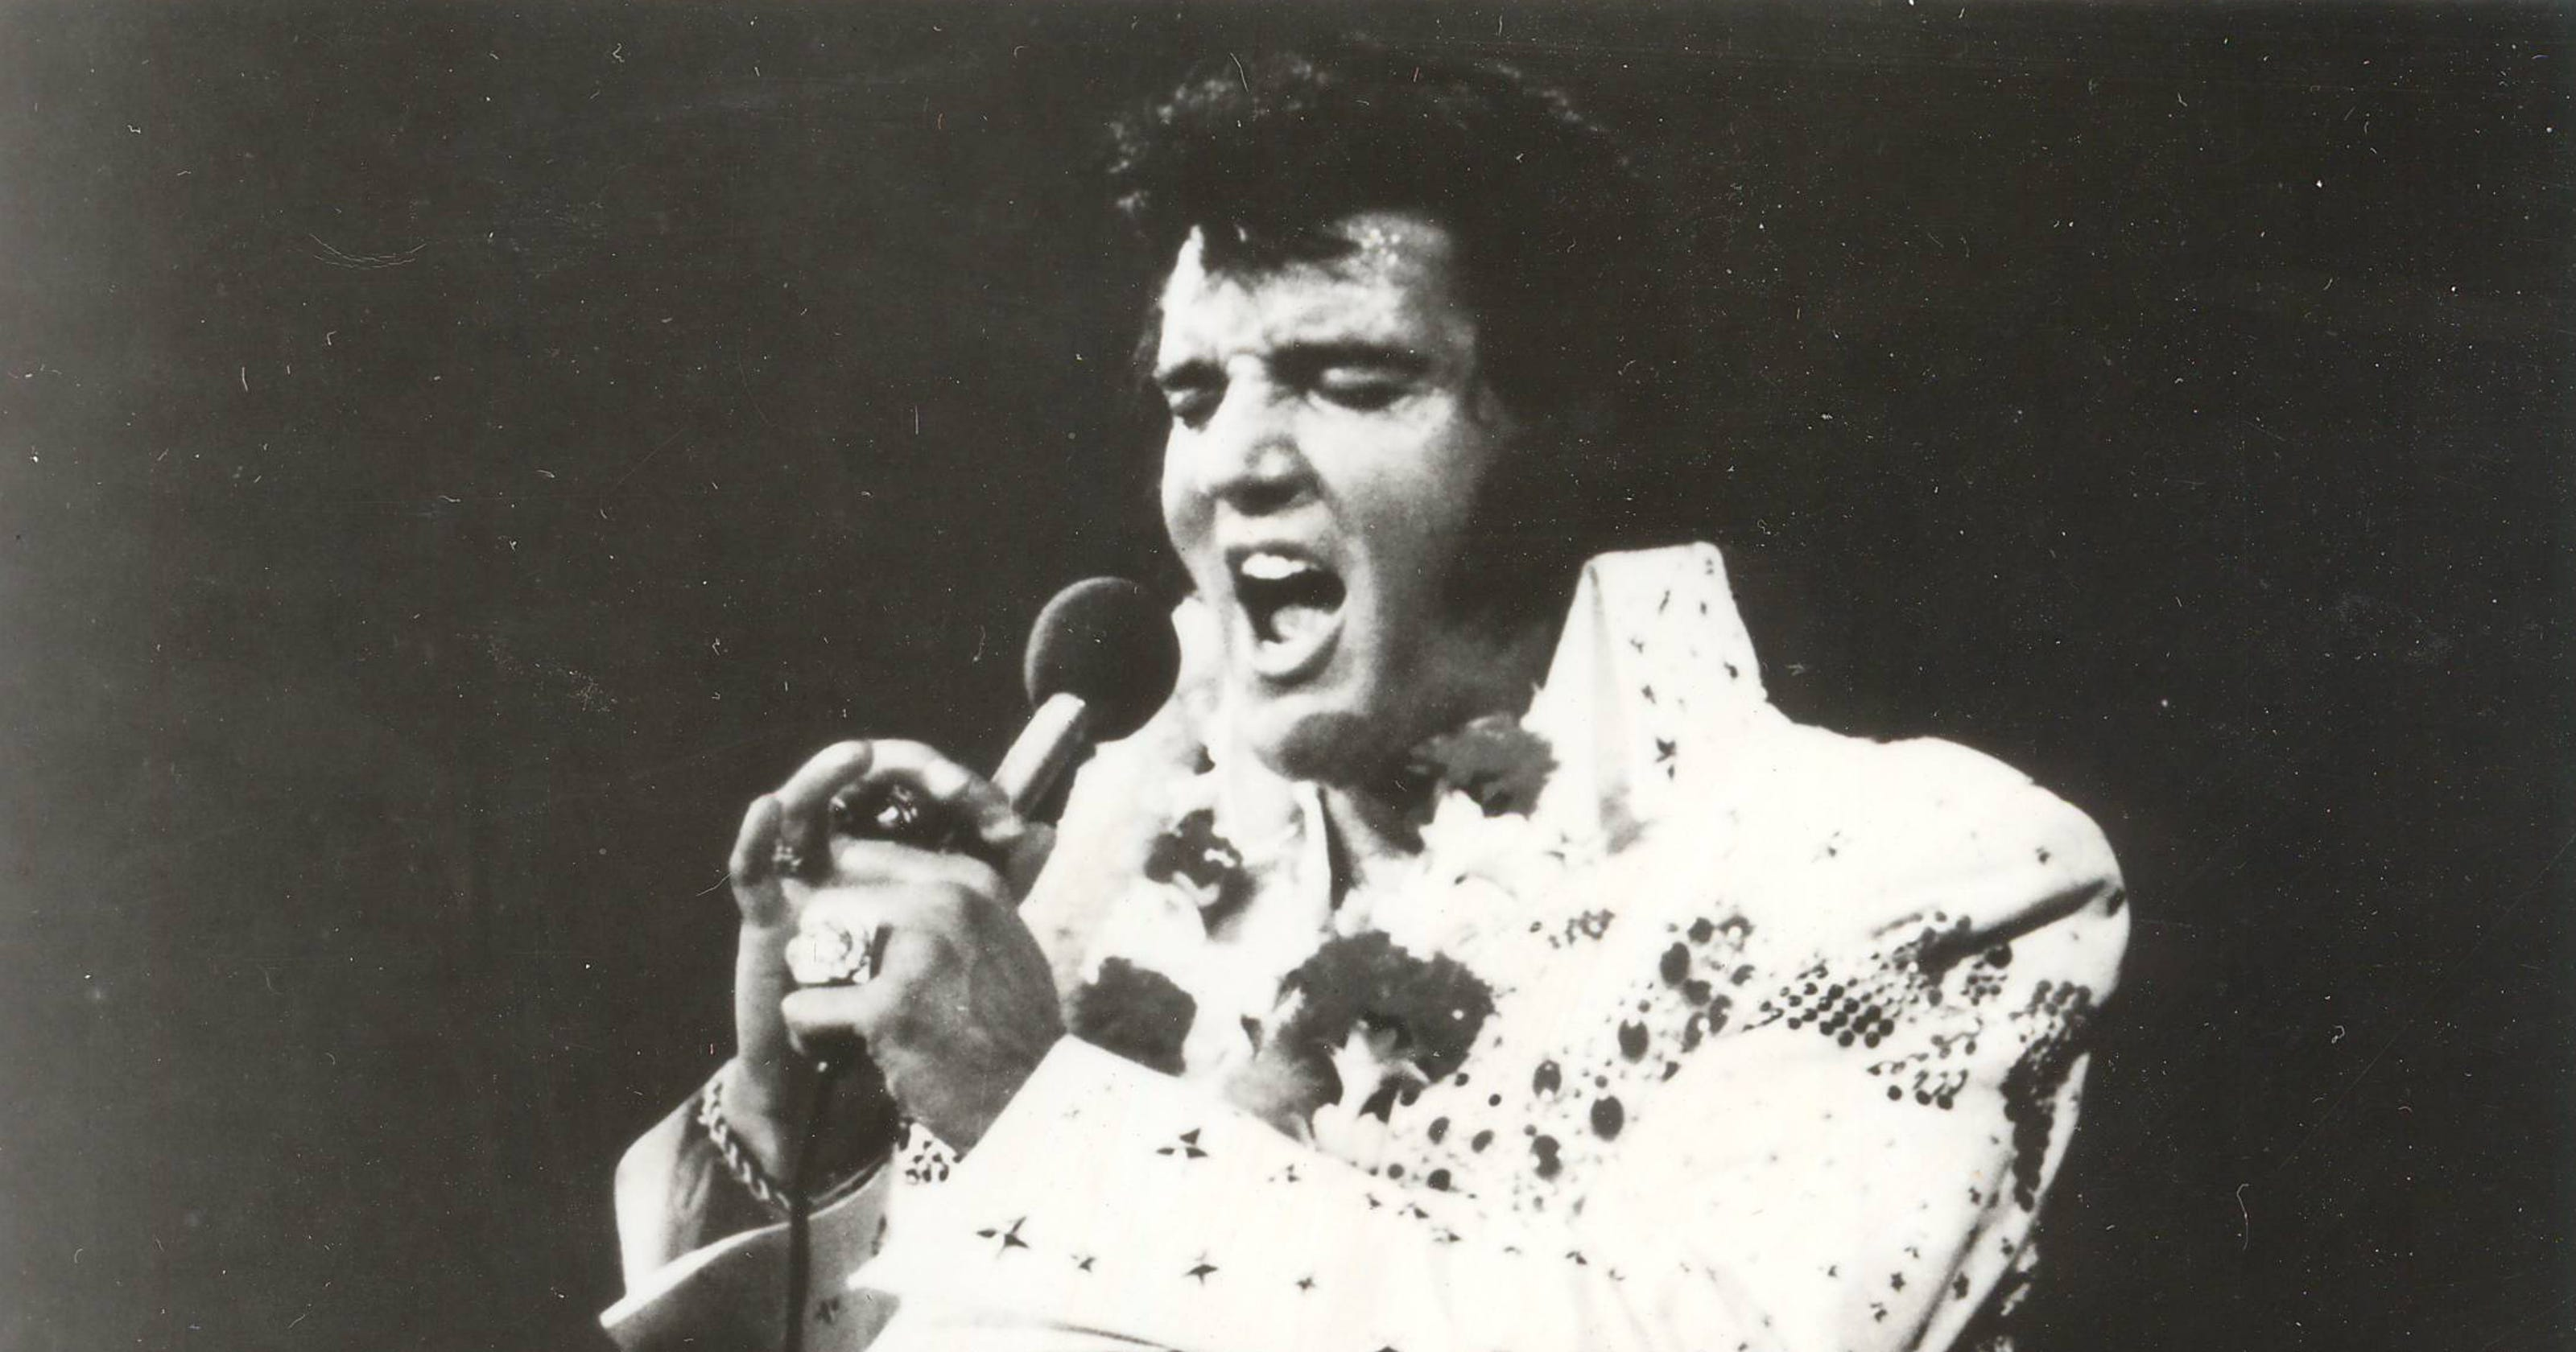 Today in History, August 16, 1977: Elvis Presley died at ...